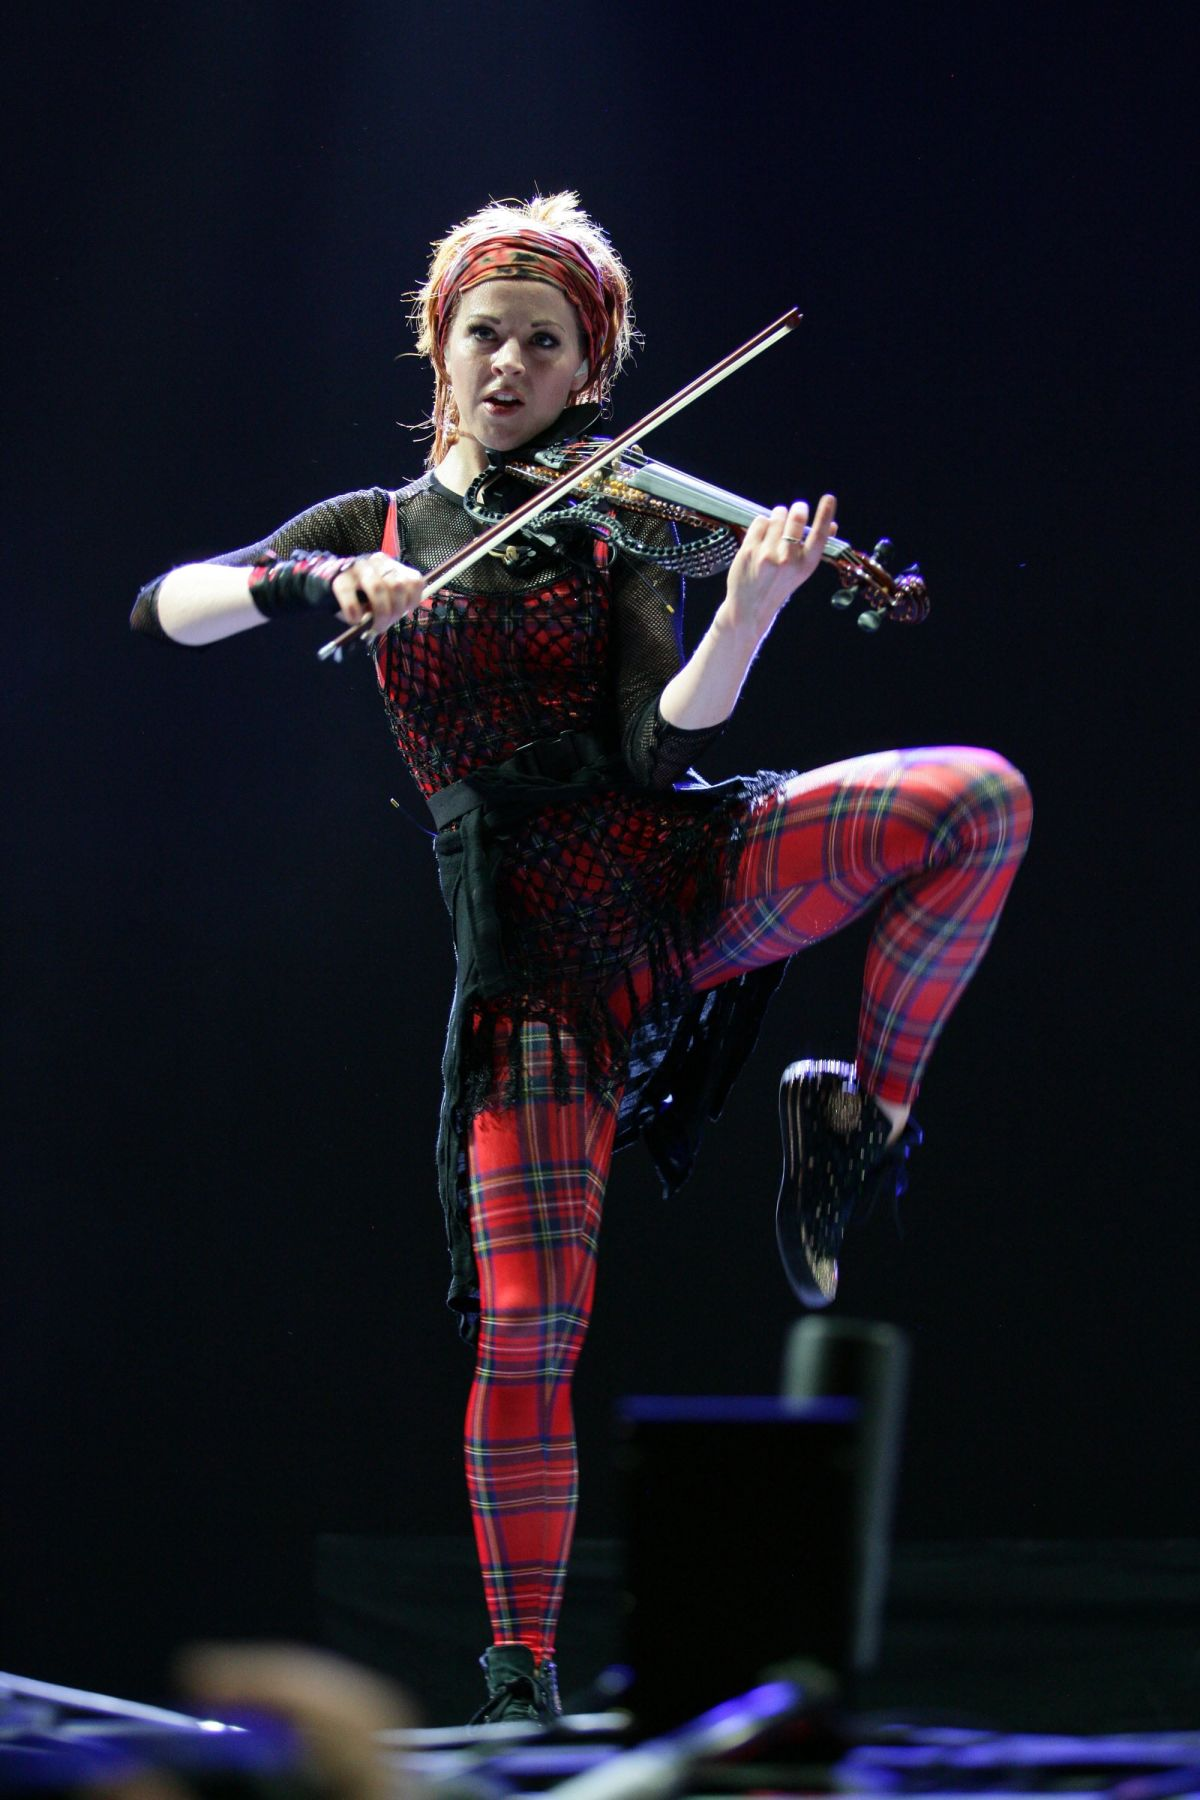 LINDSEY STIRLING Performs at 2015 Life is Beautiful Festival in Las Vegas 09/25/2015